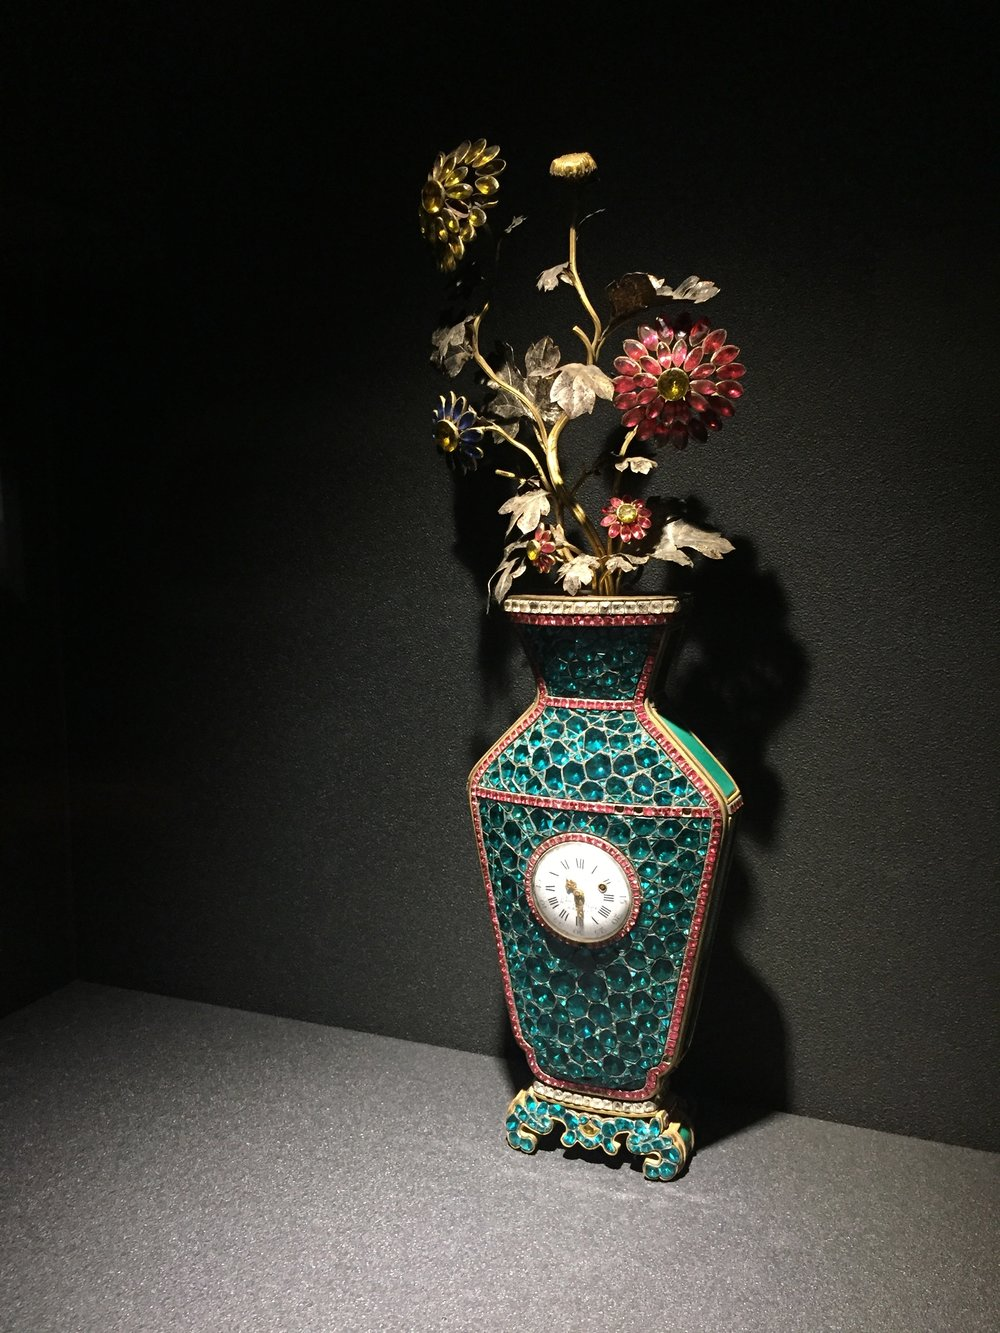 Hanging vase fitted with a clock, from the Qing dynasty (1644-1911).